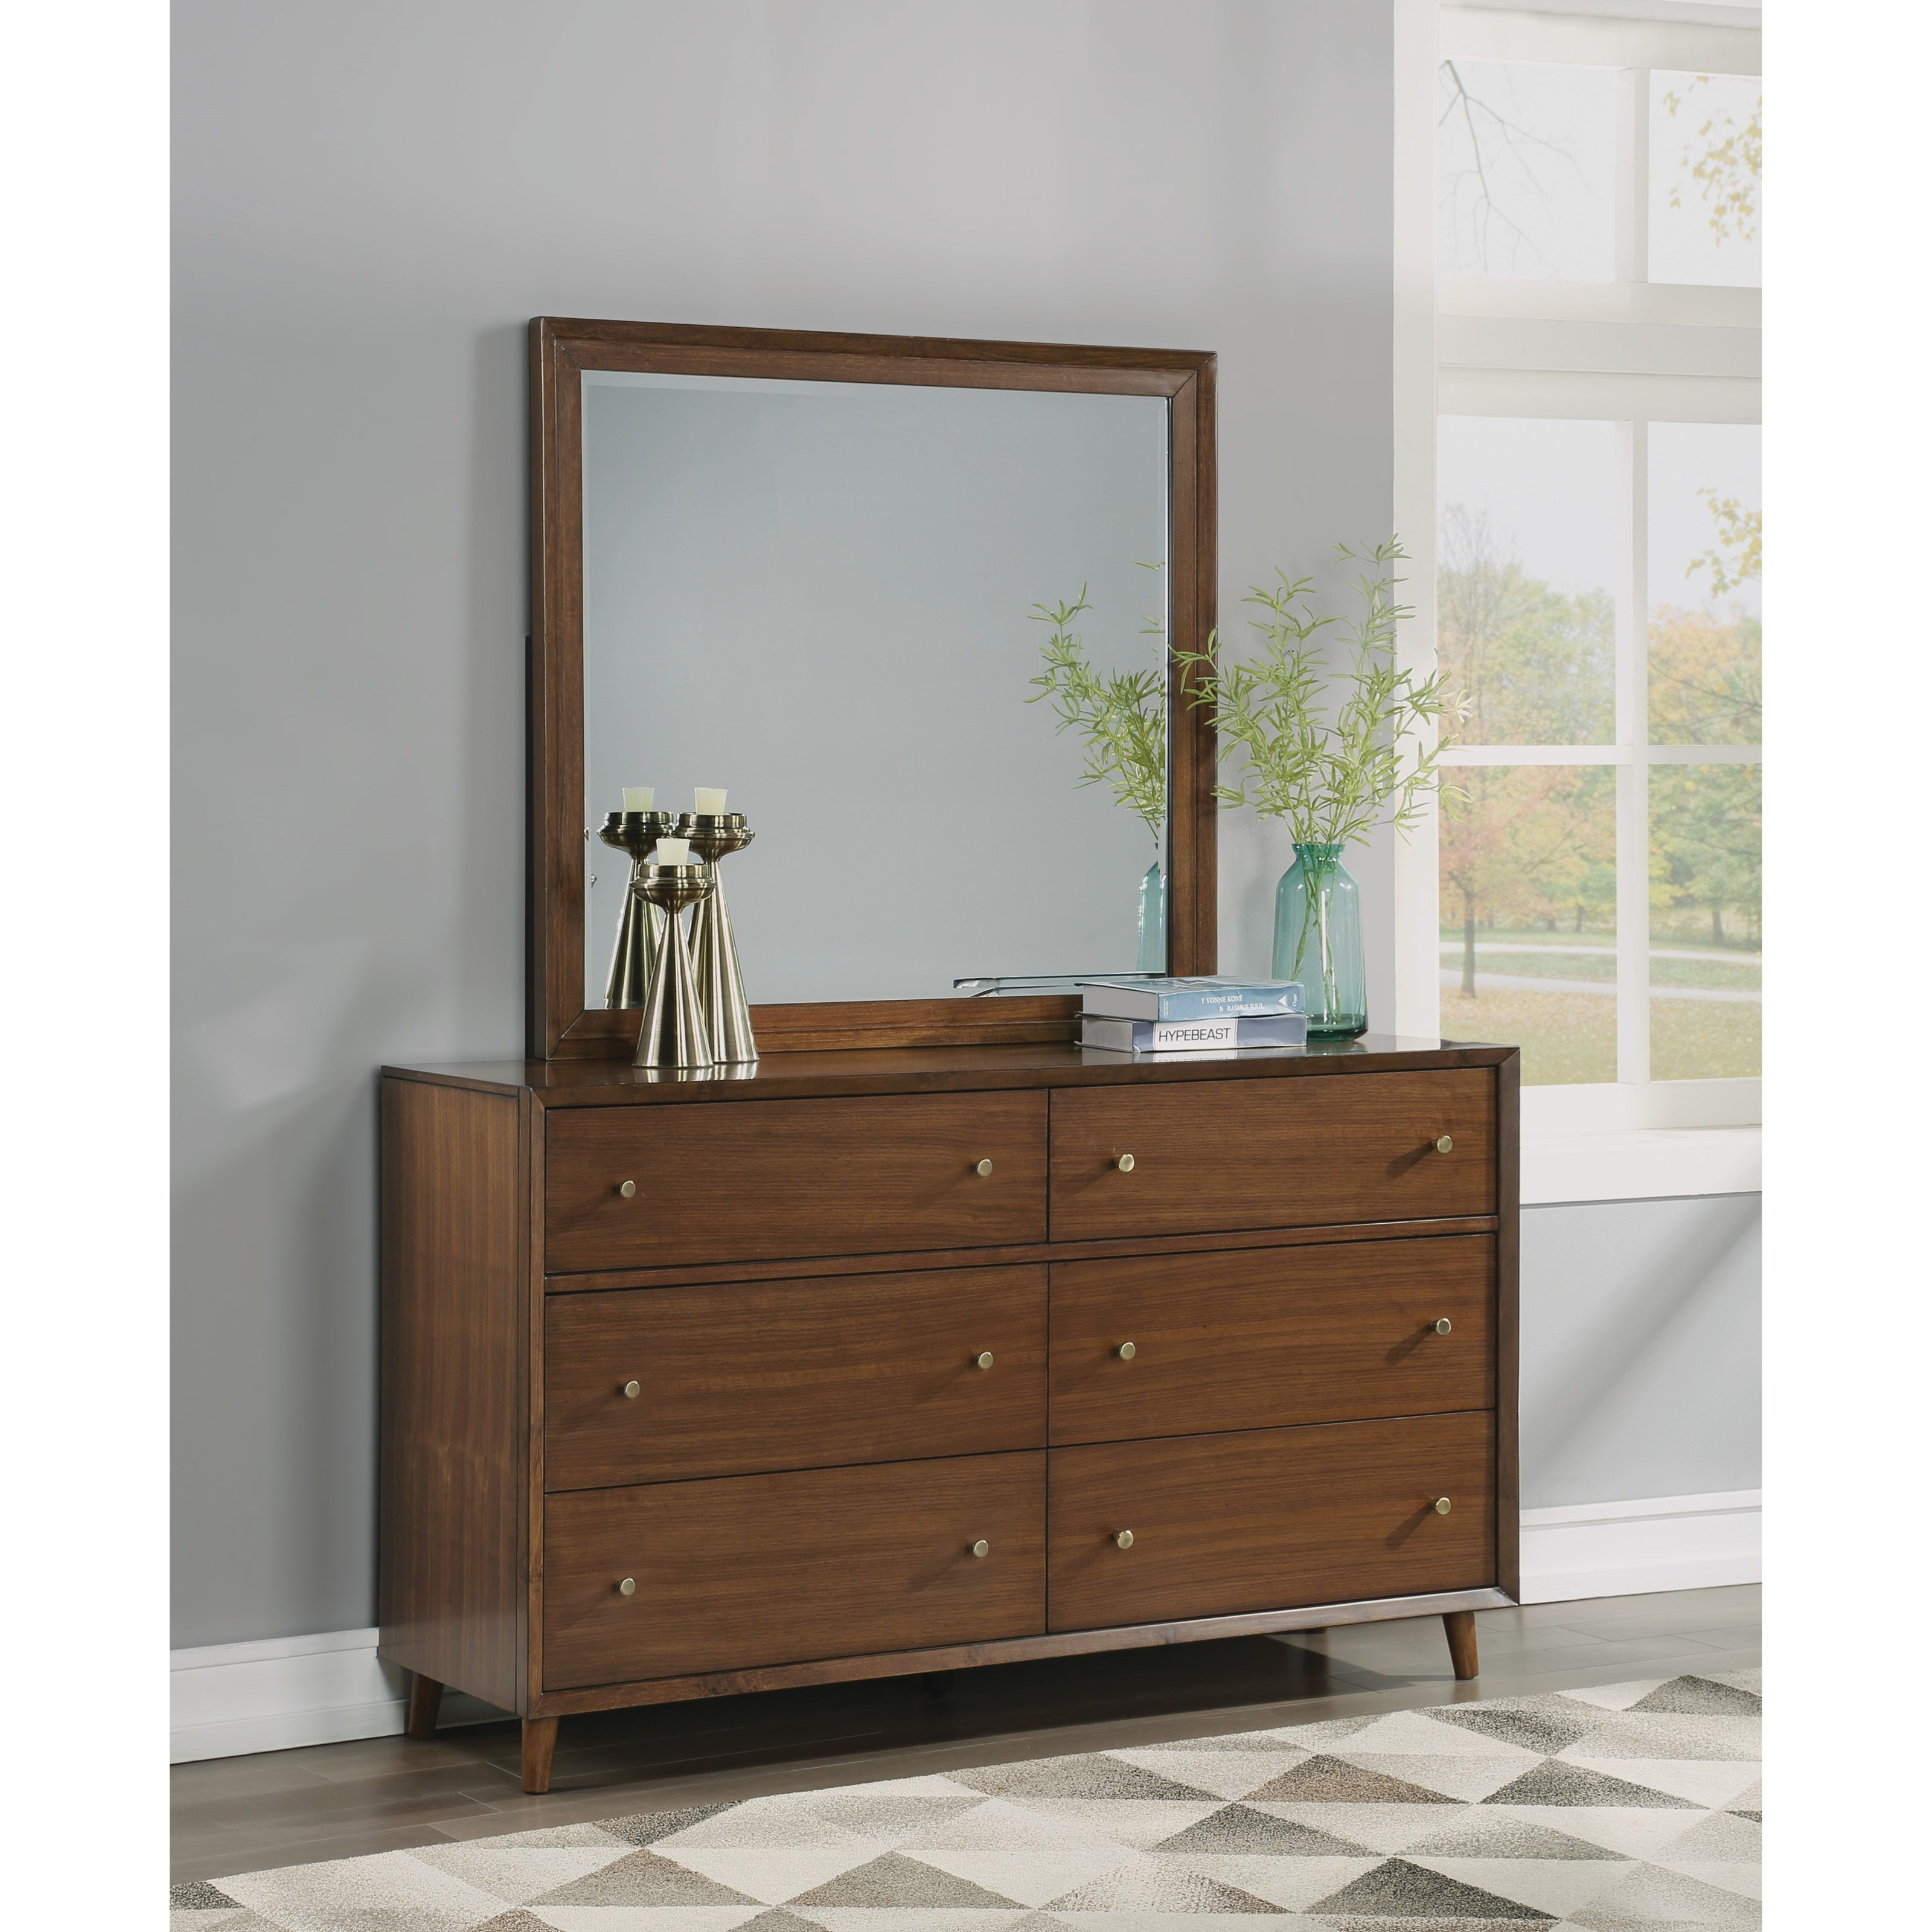 Image of: Flexsteel Wynwood Collection Ludwig Mid Century Modern Dresser And Mirror Set With Felt Lined Drawers Wilcox Furniture Dresser Mirror Sets